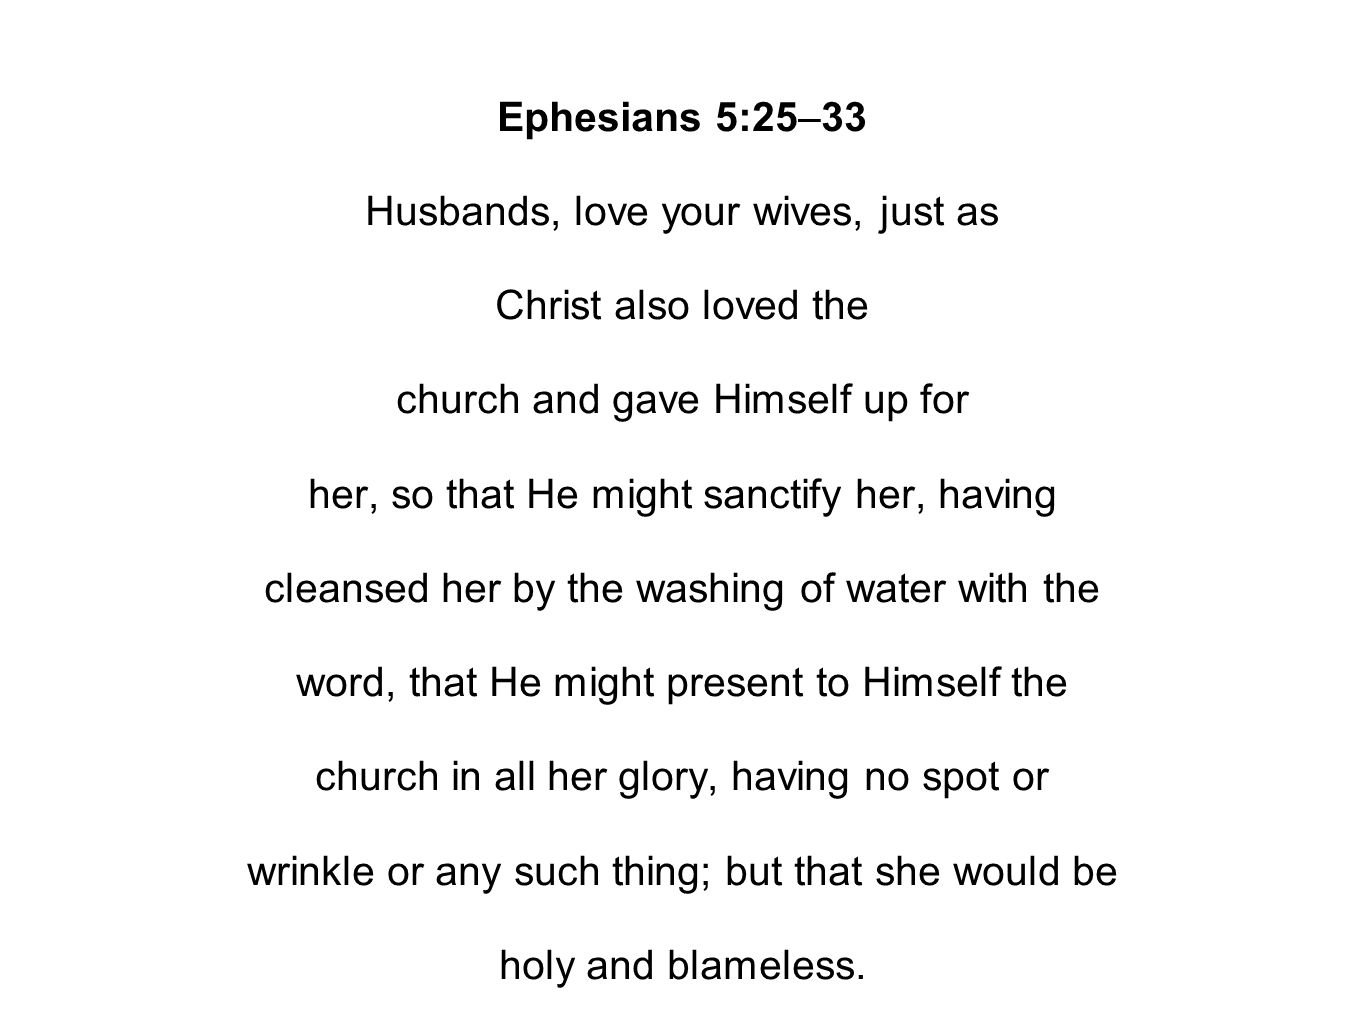 Ephesians 5:25–33 Husbands, love your wives, just as Christ also loved the church and gave Himself up for her, so that He might sanctify her, having cleansed her by the washing of water with the word, that He might present to Himself the church in all her glory, having no spot or wrinkle or any such thing; but that she would be holy and blameless.